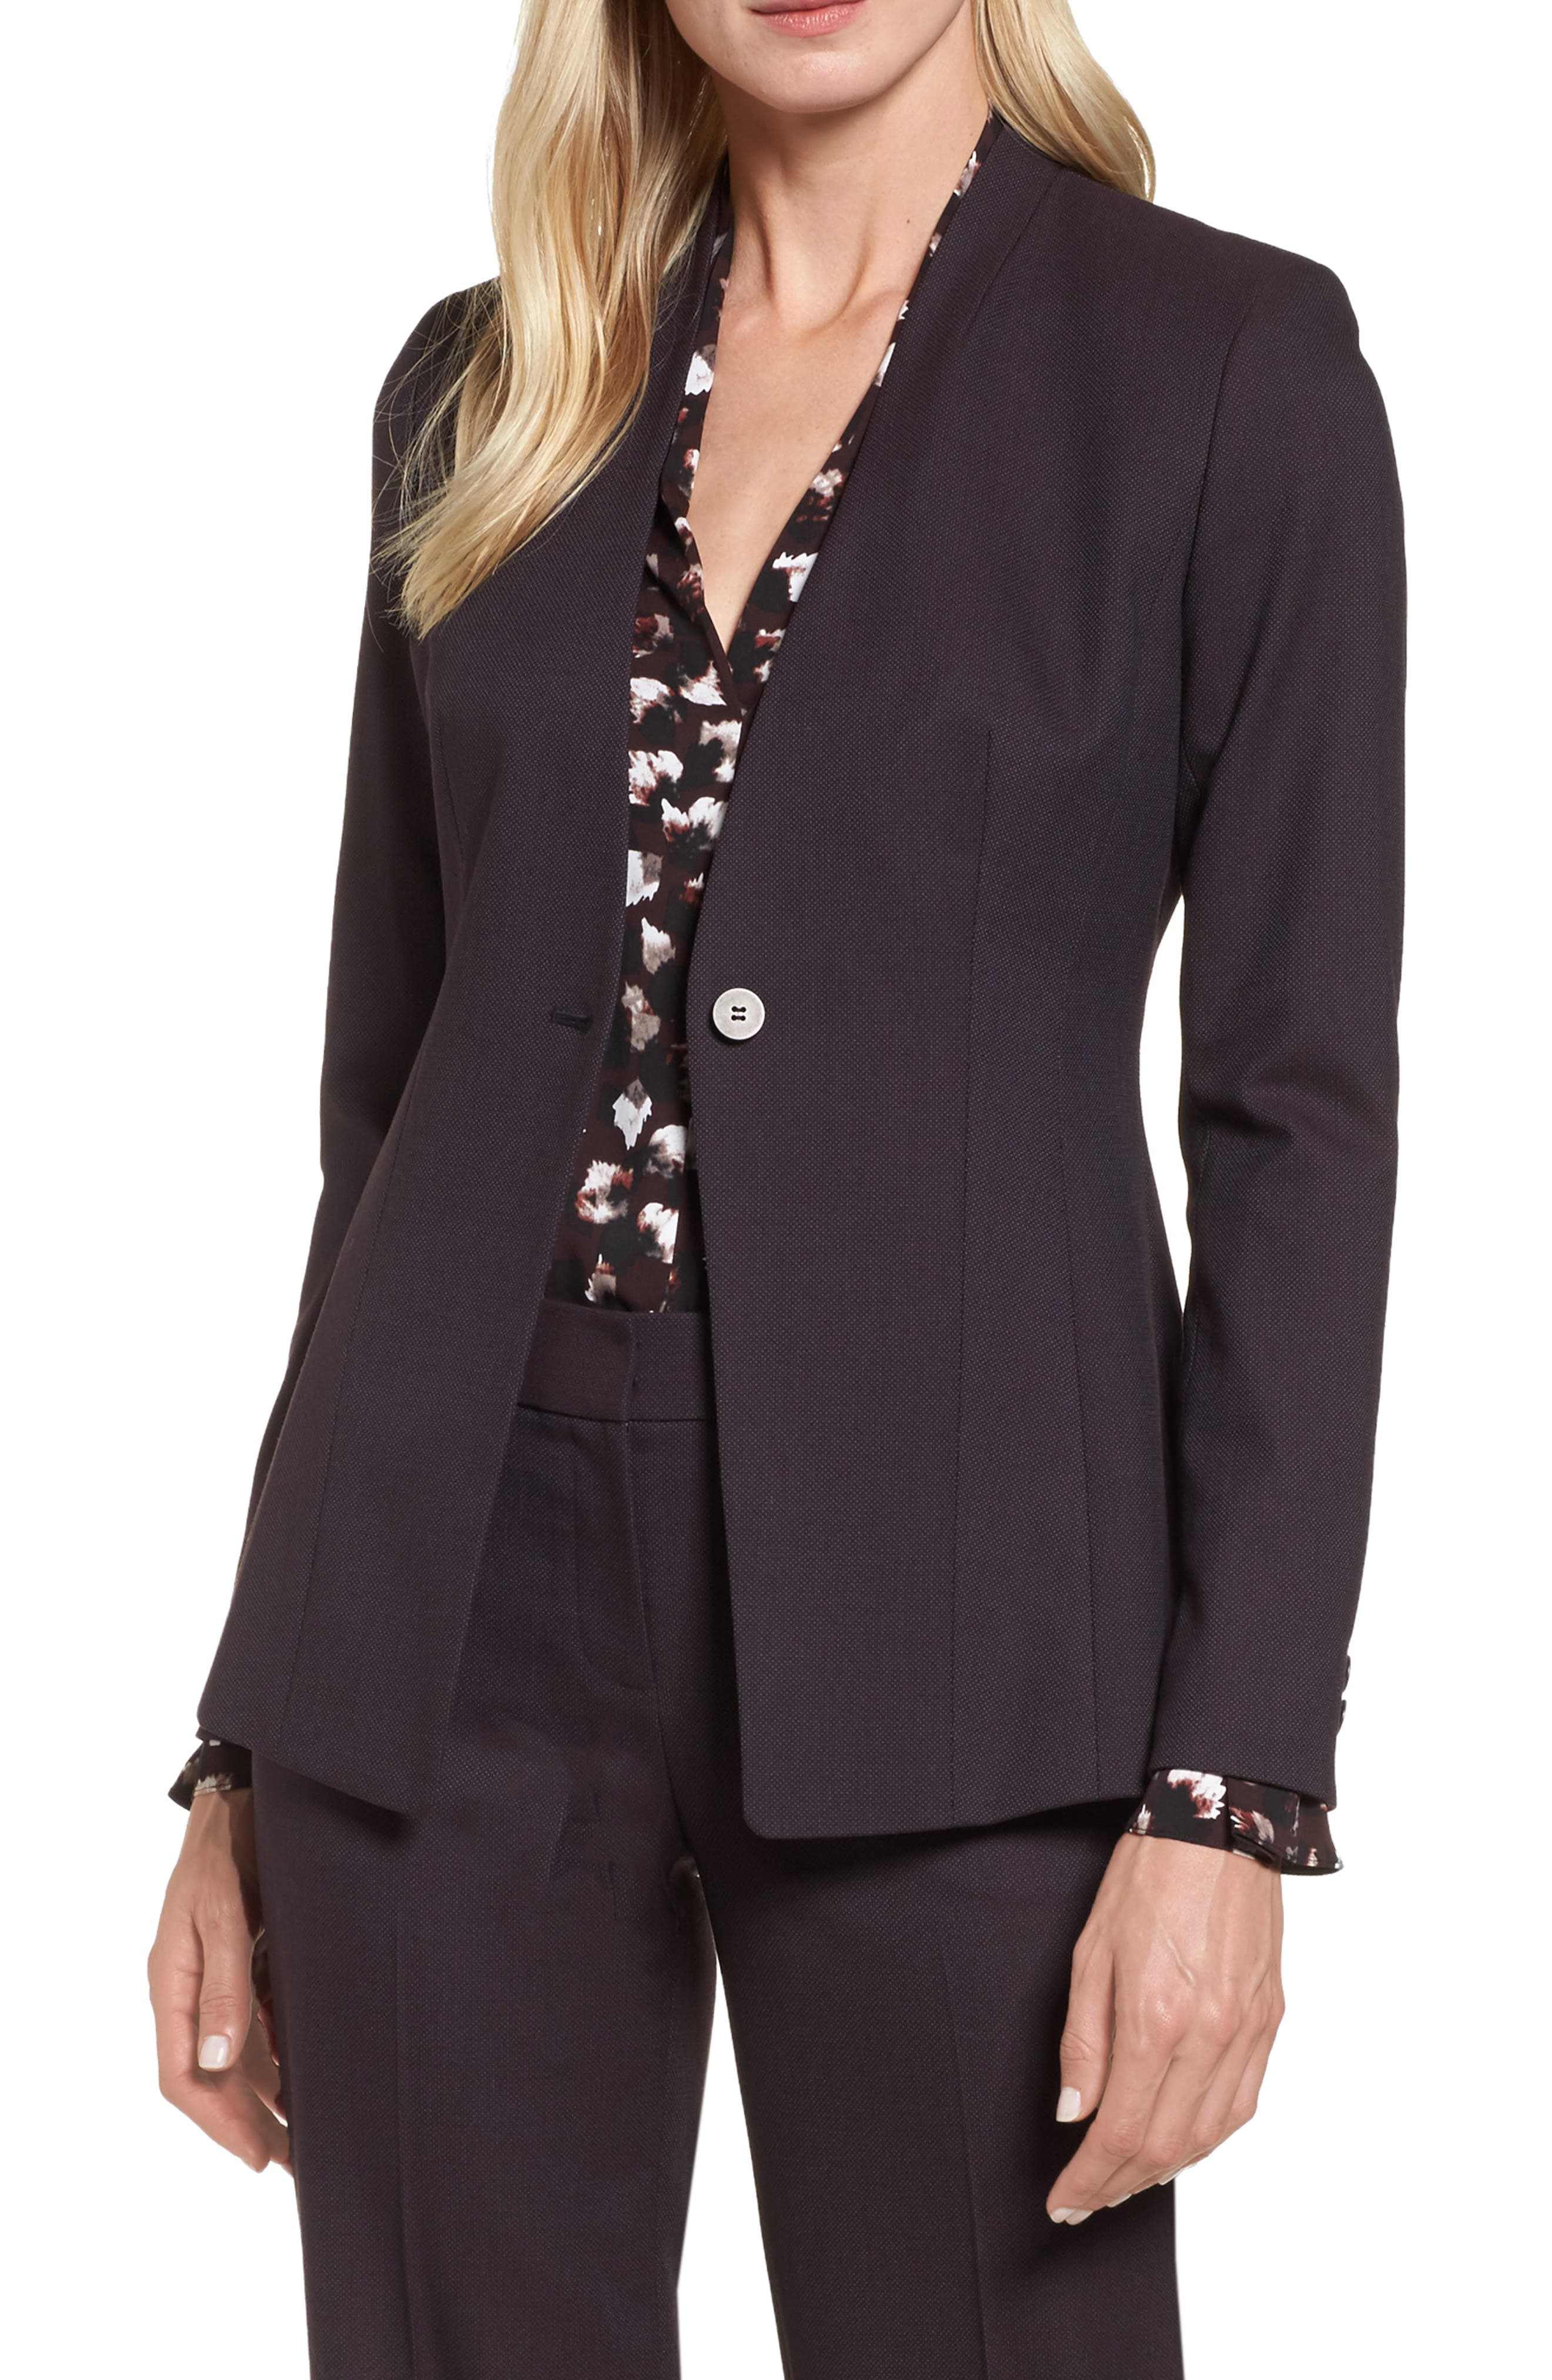 Main Image - Emerson Rose One-Button Suit Jacket